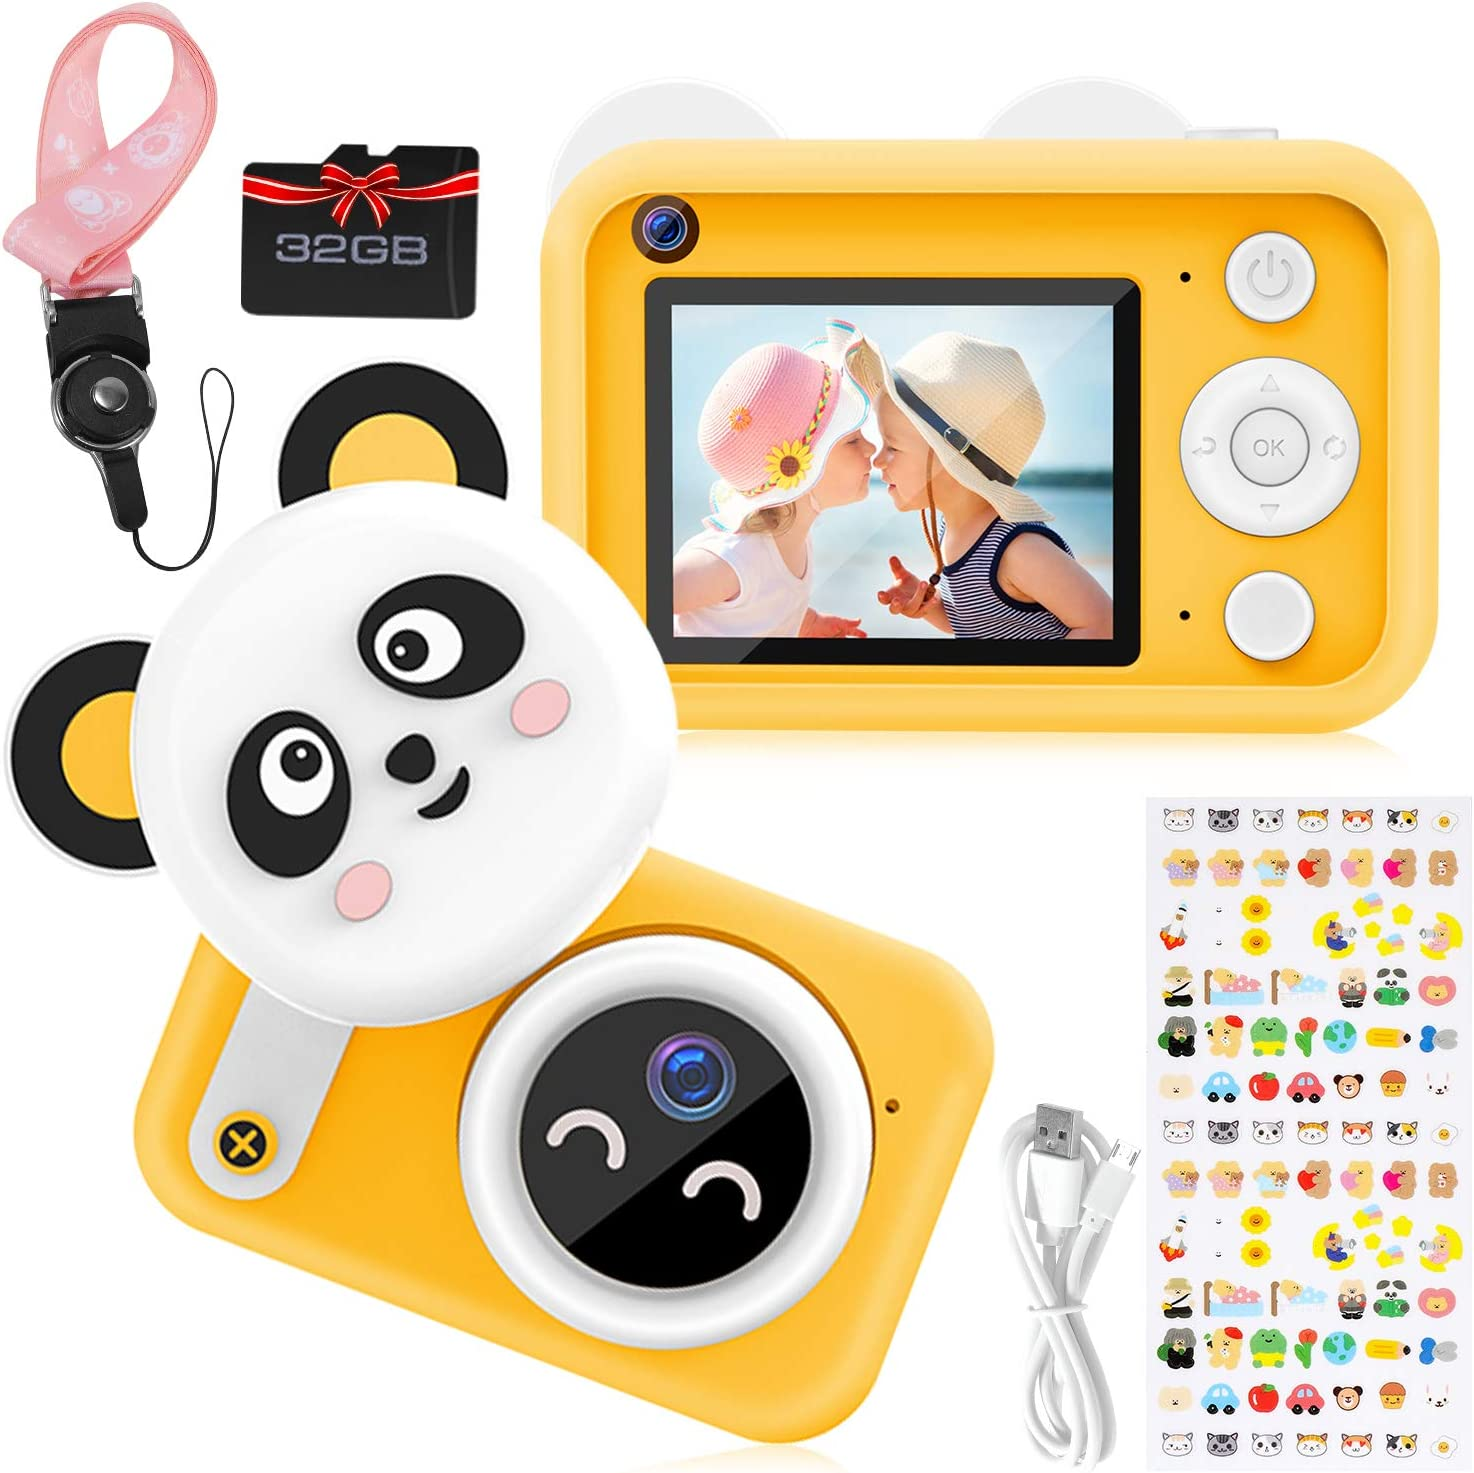 Vimpro Kids Camera, Newest 1080P HD Digital Dual Cameras with 32GB SD Card, Toddler Selfie Video Recorder Toy for 4-12 Year Old Boys (Yellow)